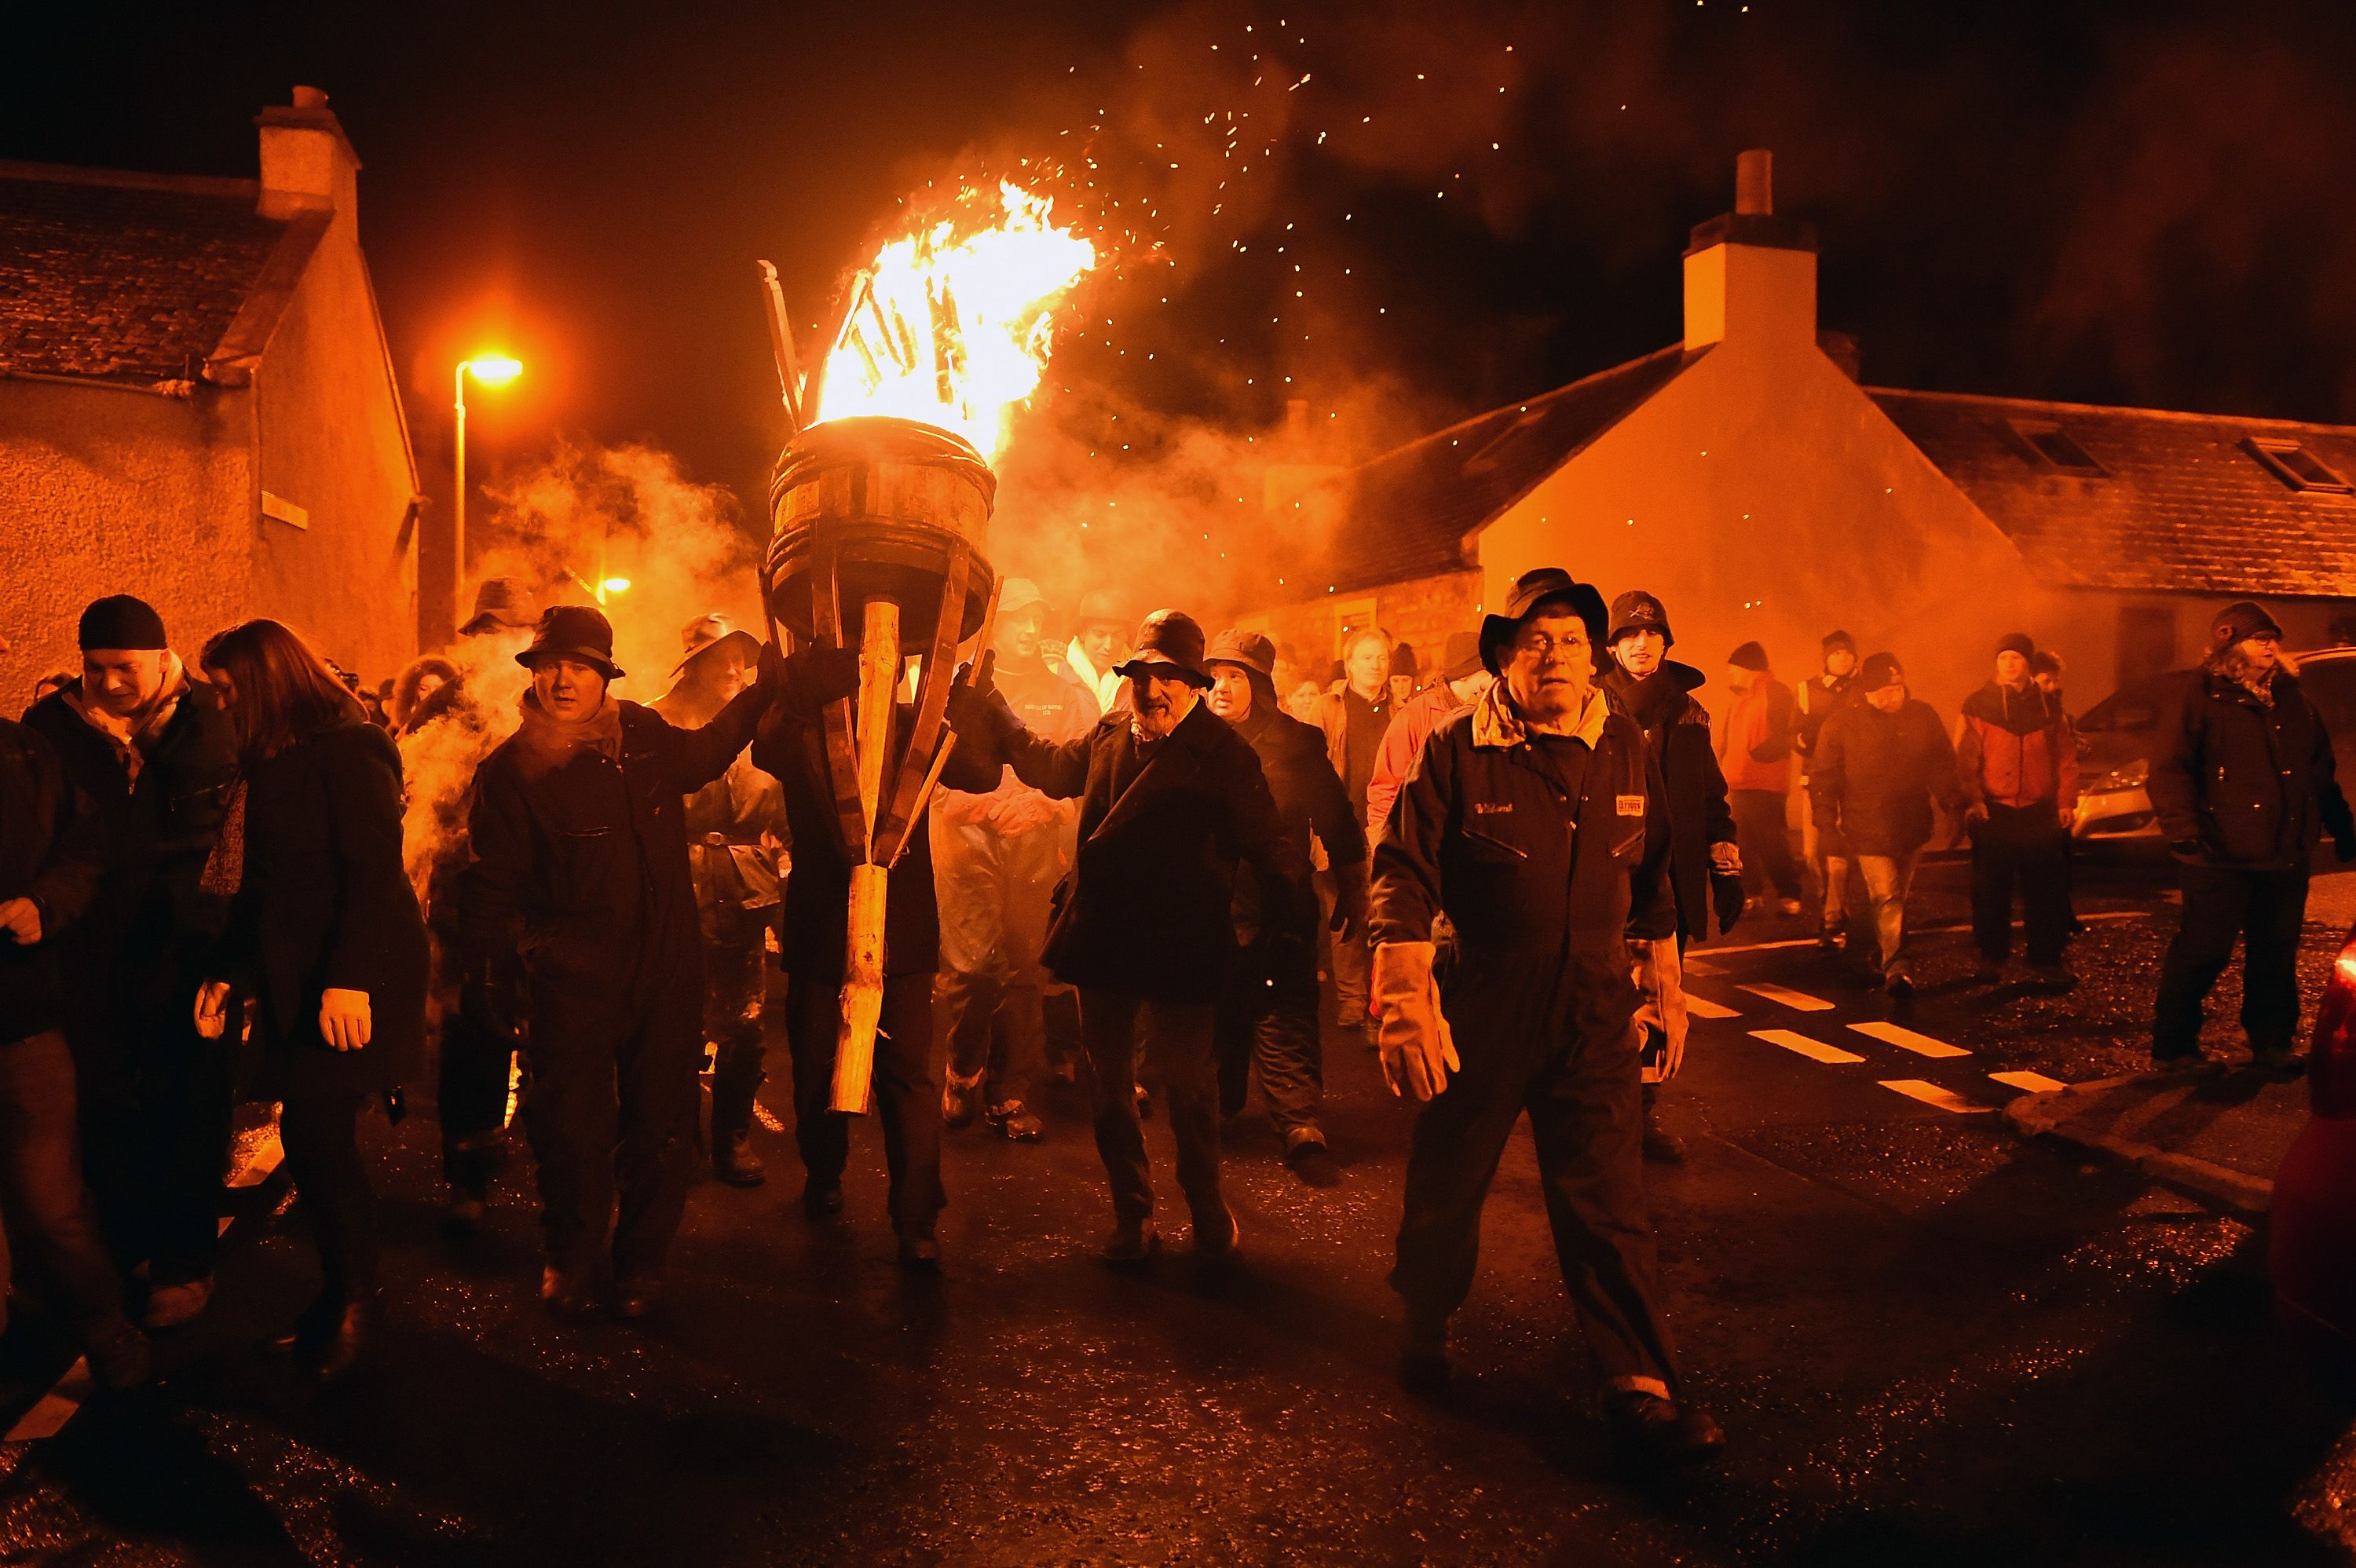 The Burning Of The Clavie In Burghead